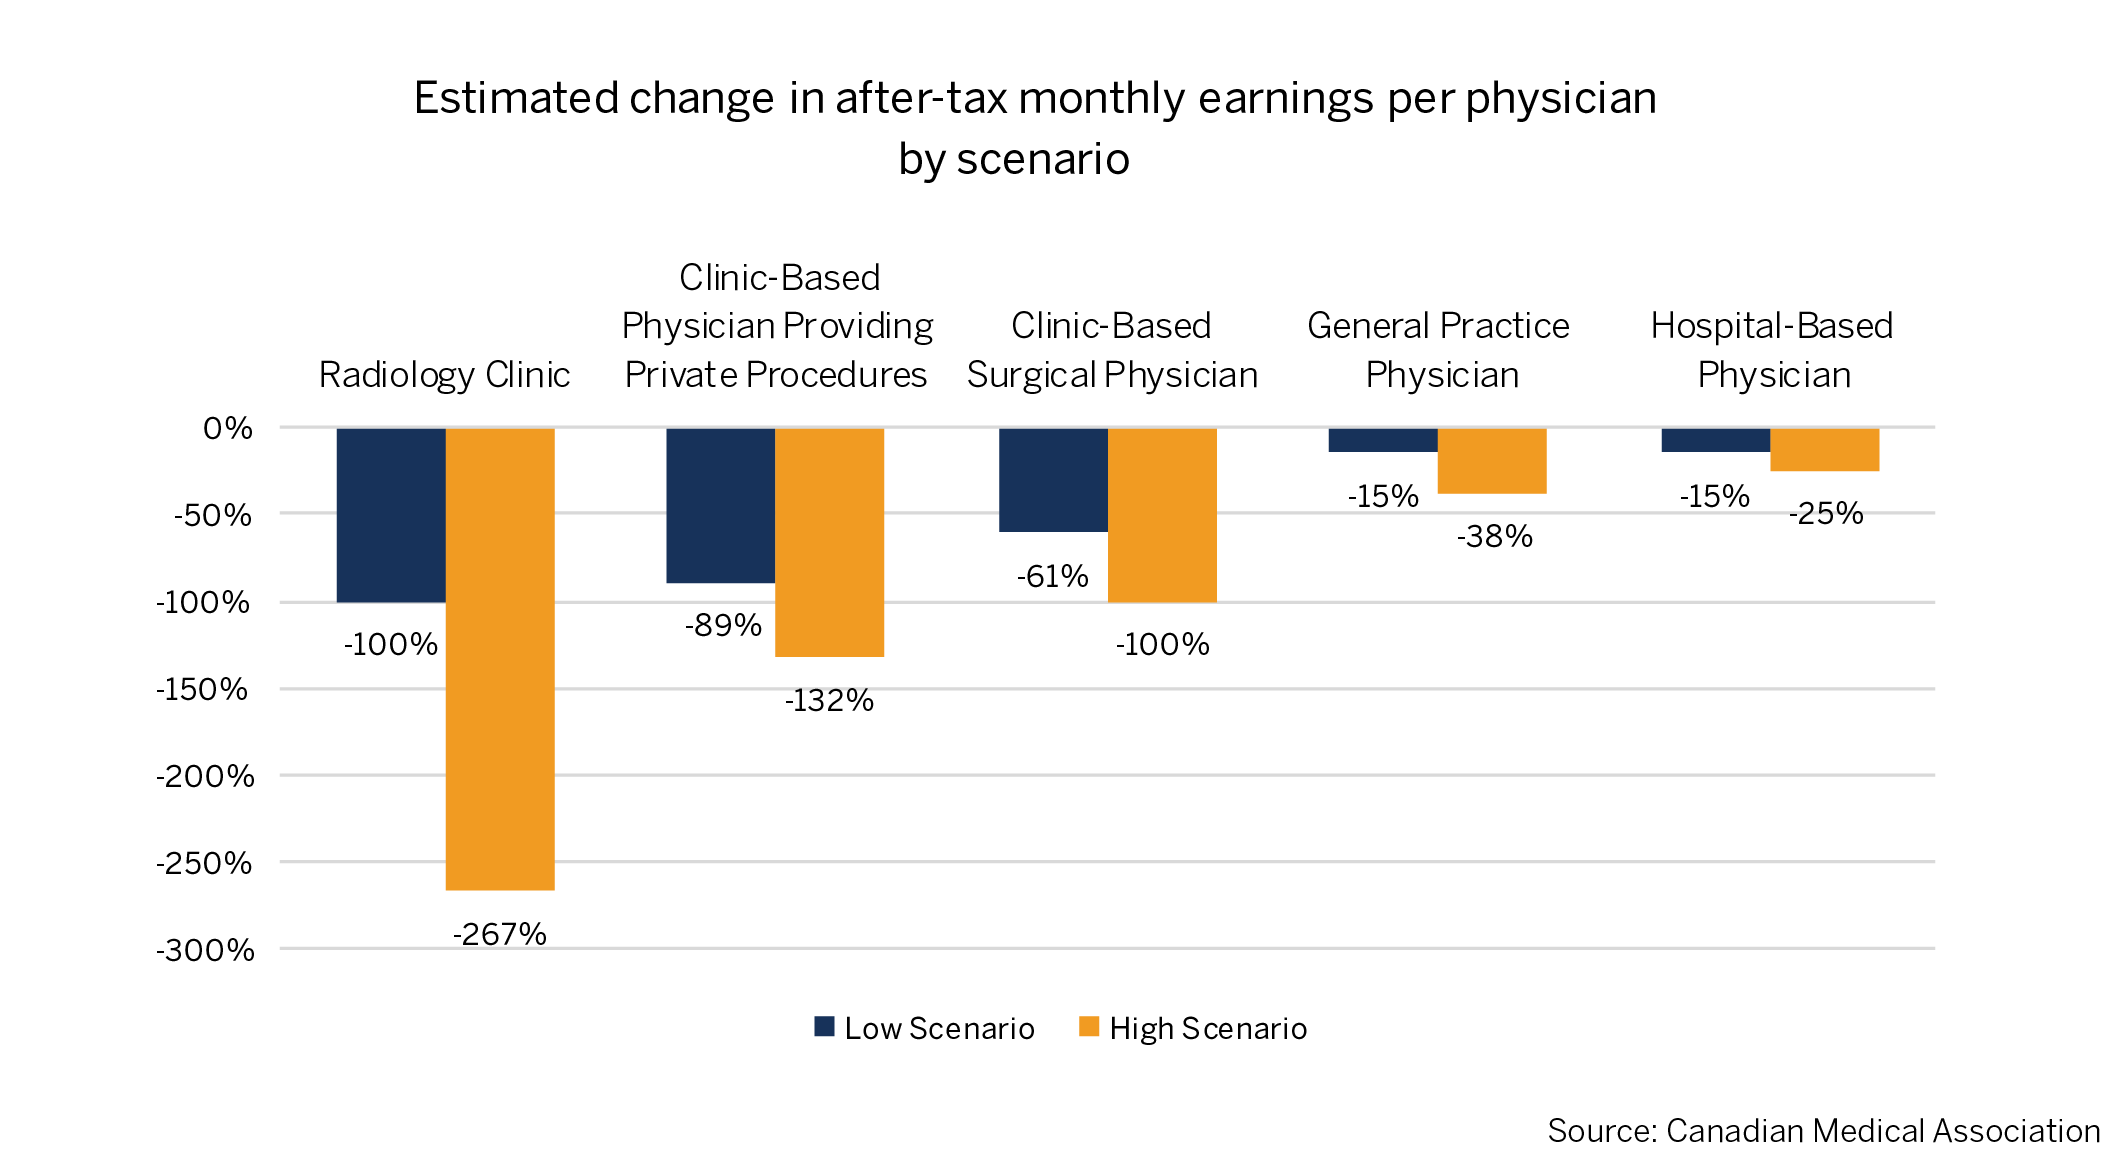 Estimated change in after-tax monthly earnings per physician by scenario